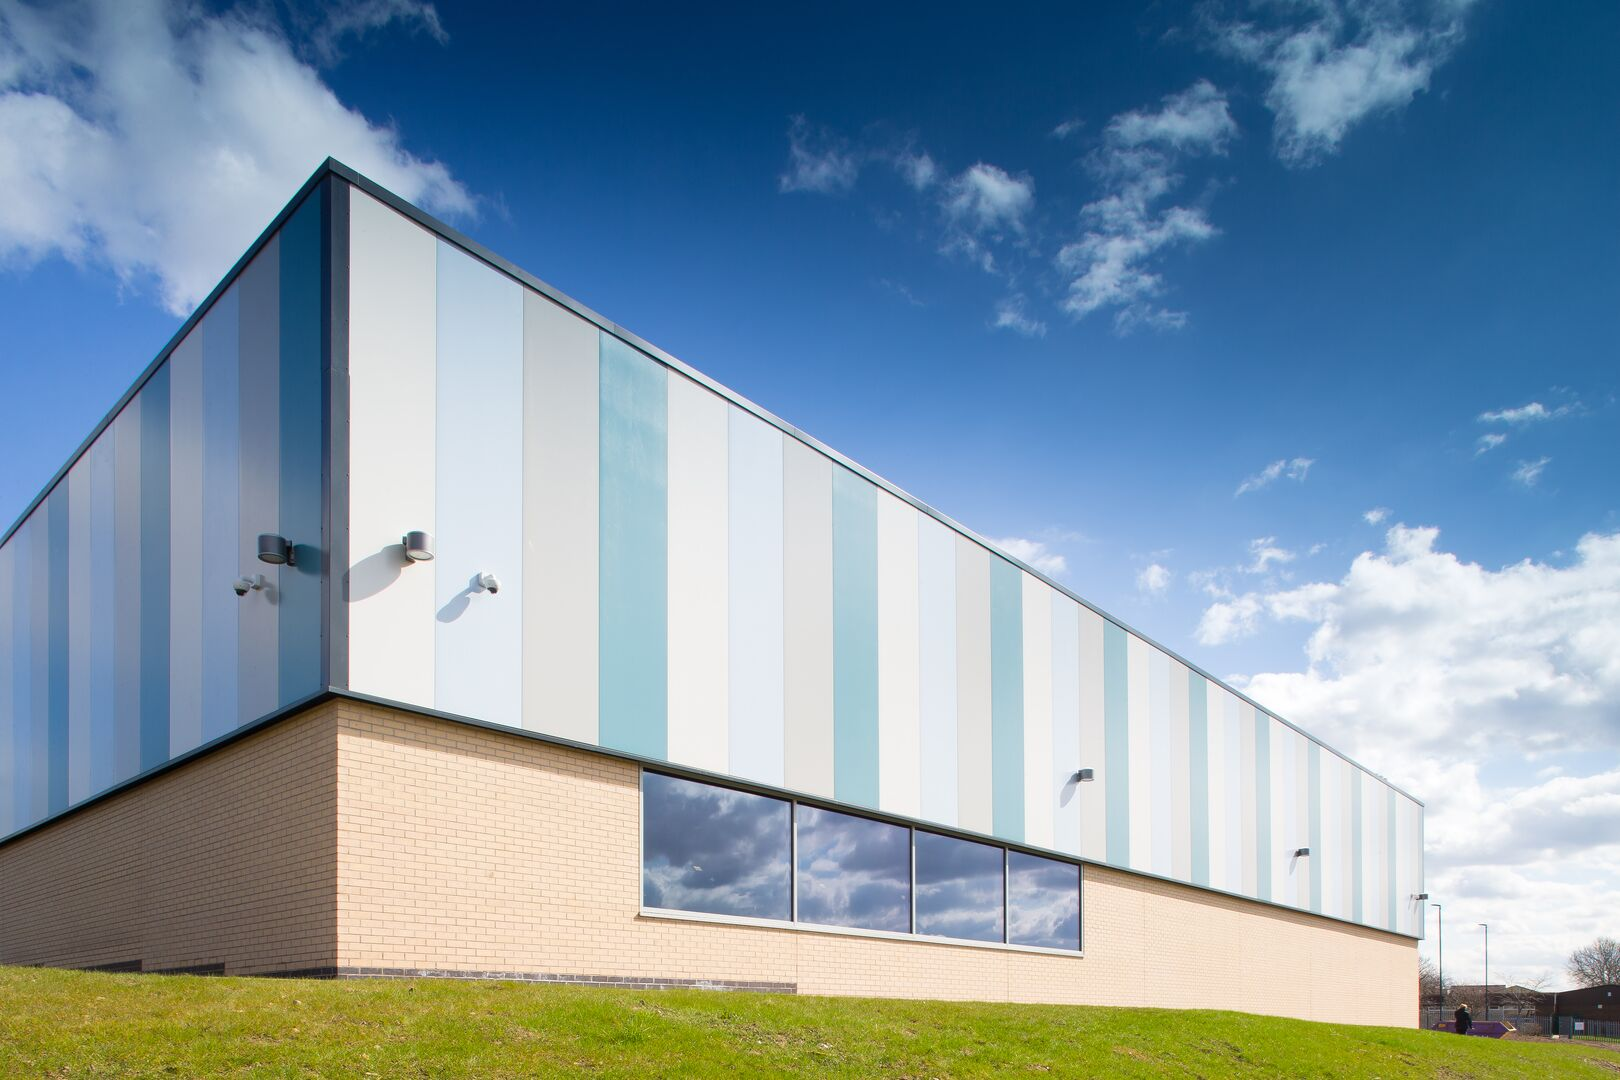 Minsthorpe Leisure Centre using Trimapanel insulated panels from Tata Steel